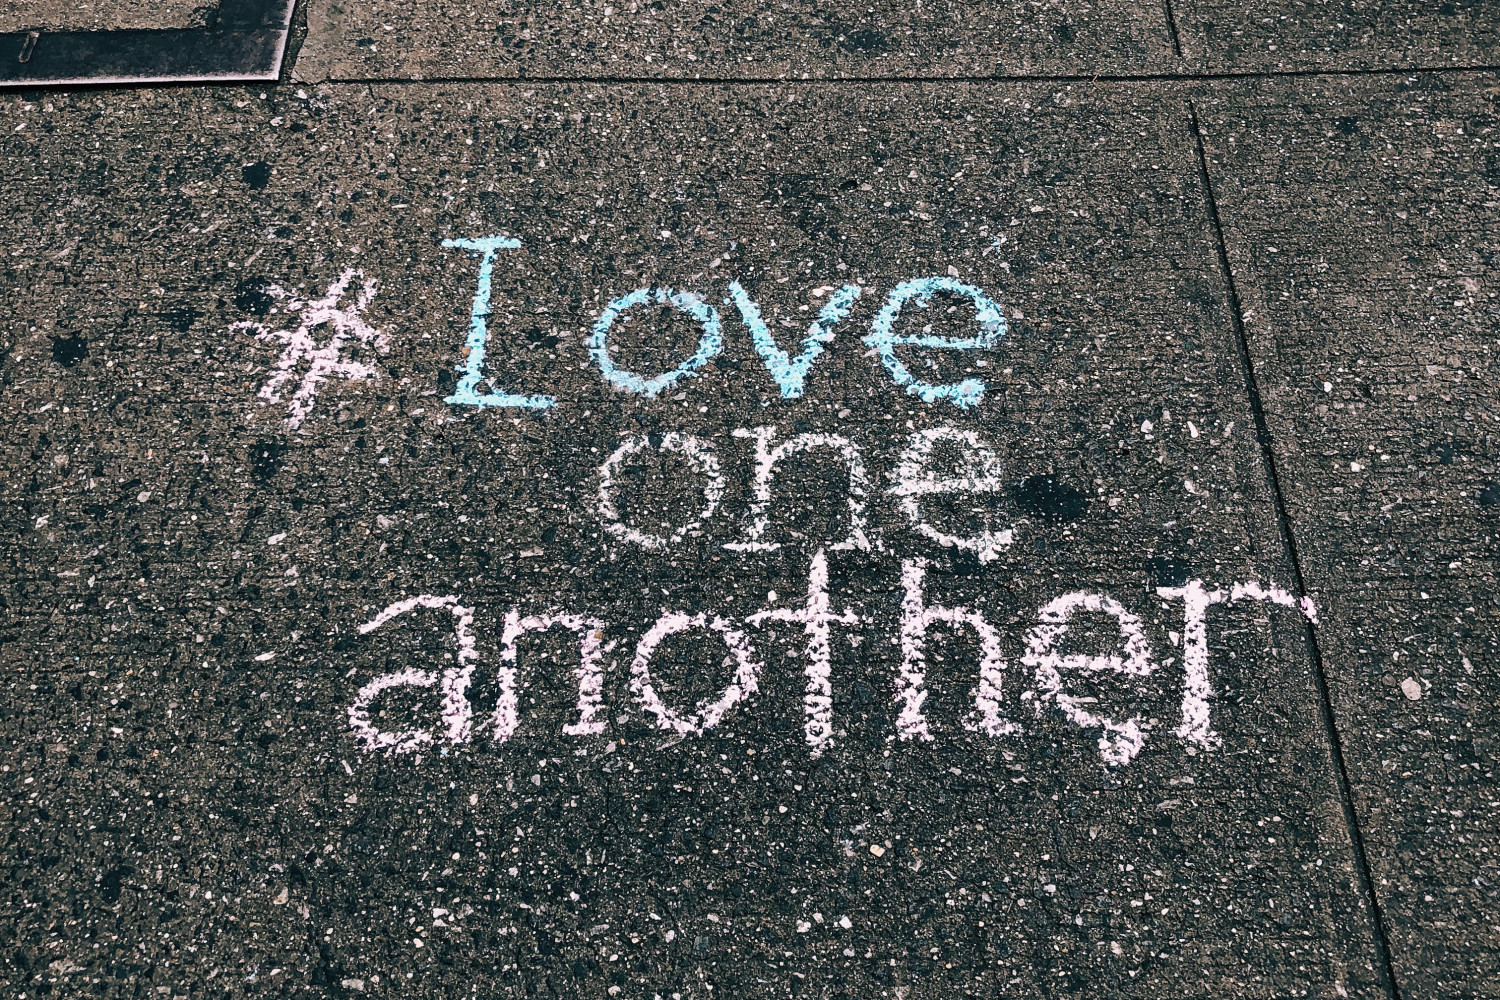 Image of pavement with 'Love one another' written in chalk